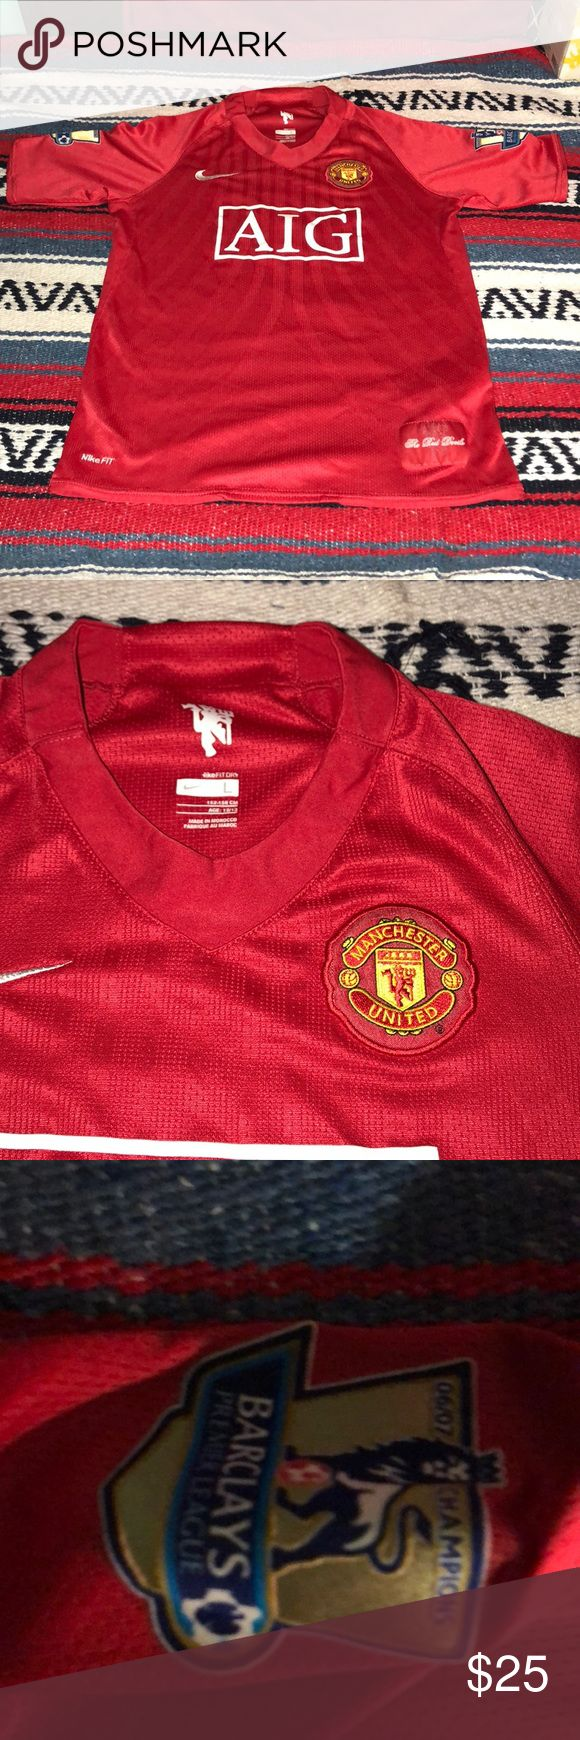 Manchester United soccer Jersey size 12/13 youth Manchester United large size 12/13 youth soccer jersey gently used Nike fit Shirts & Tops Tees - Short Sleeve